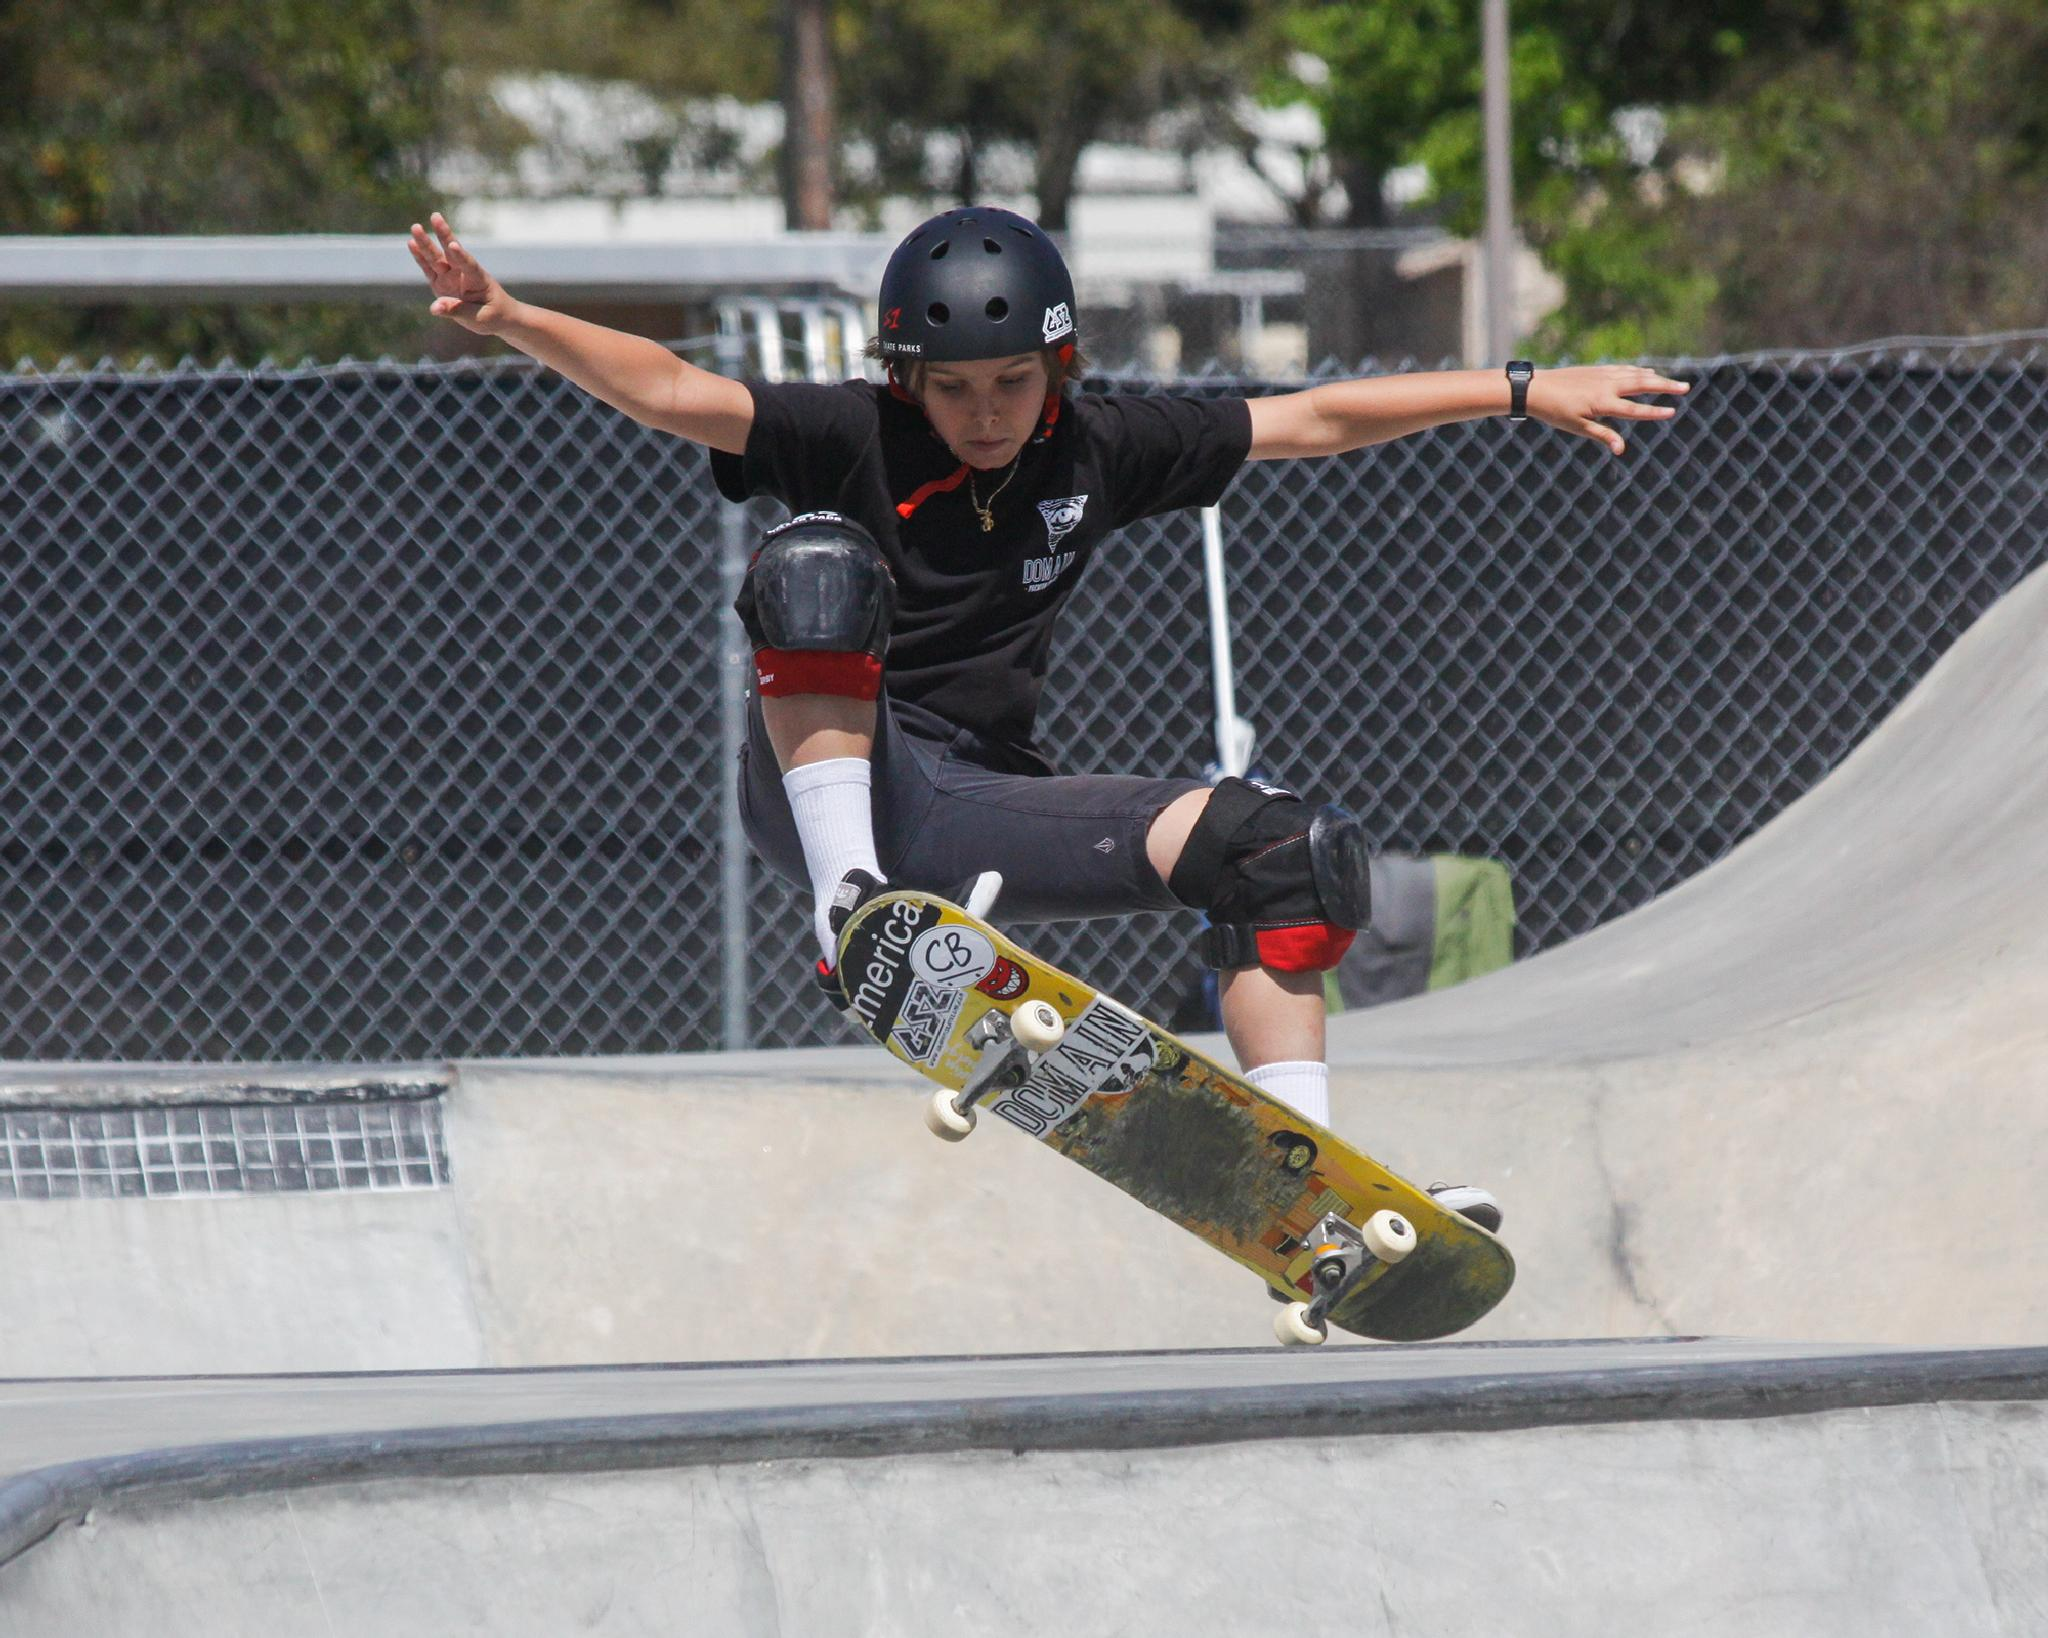 getting some air by Brian Hammersley